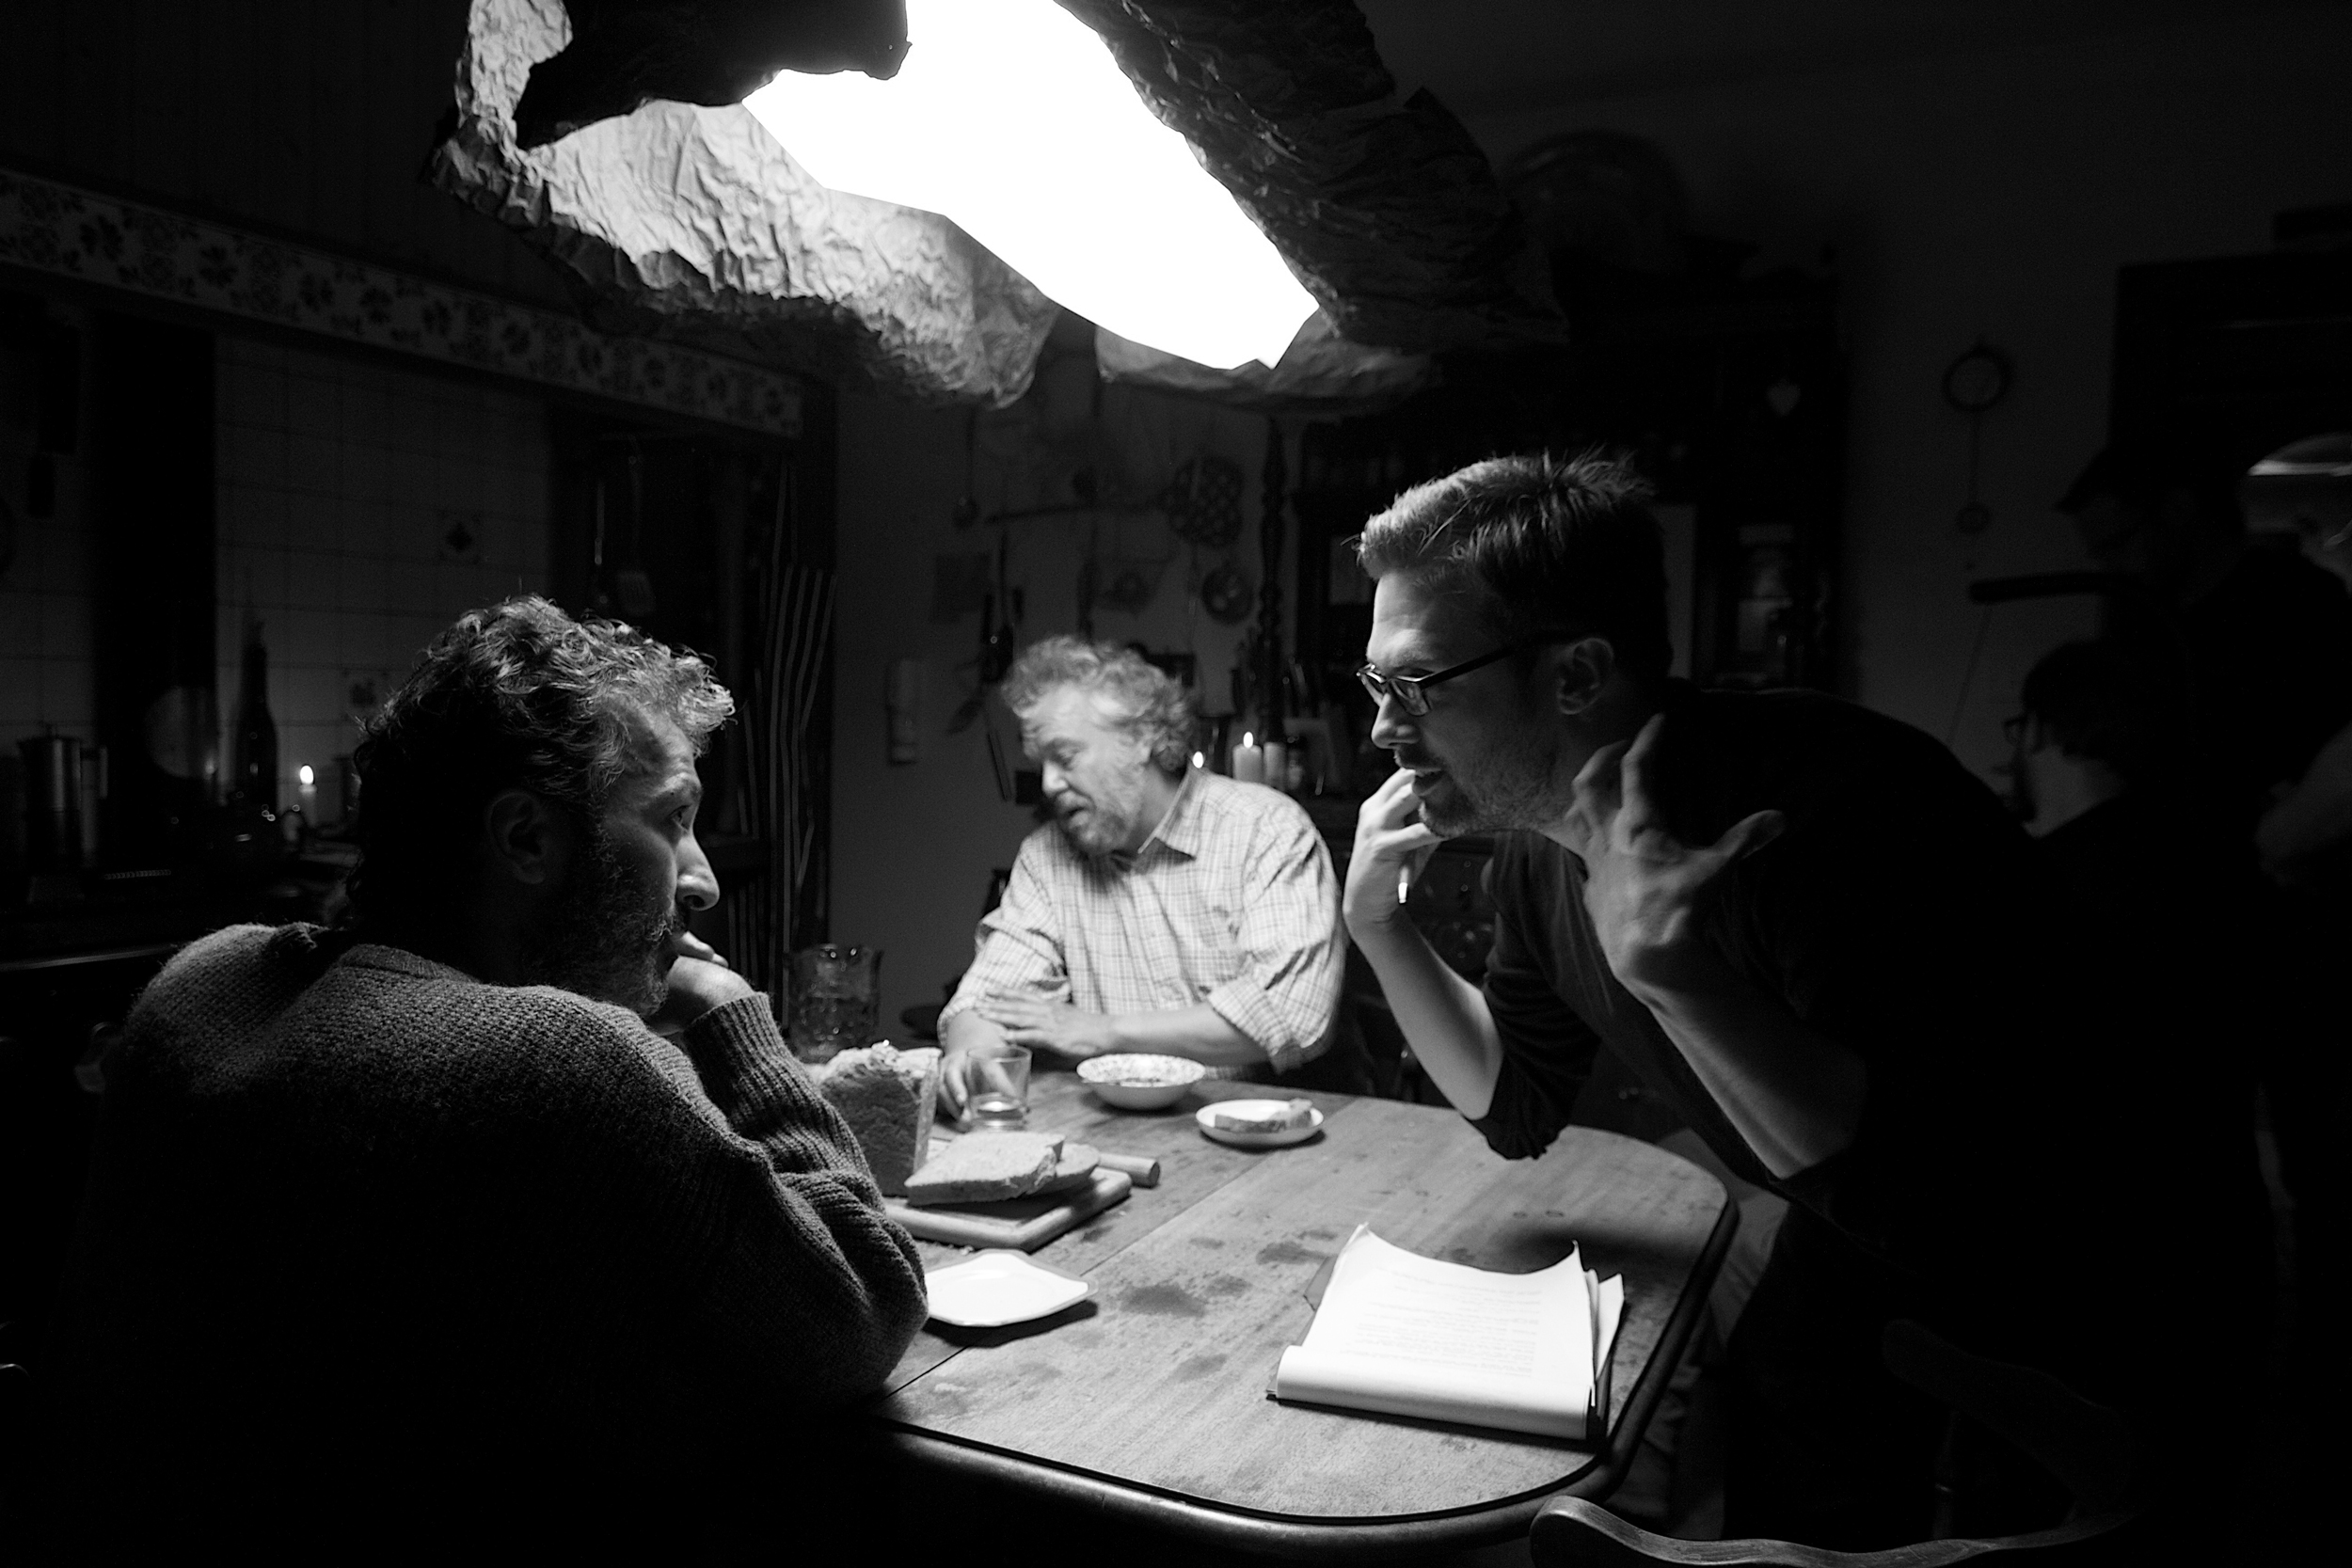 Ian Waugh directing Christopher Greco in As He Lay Falling